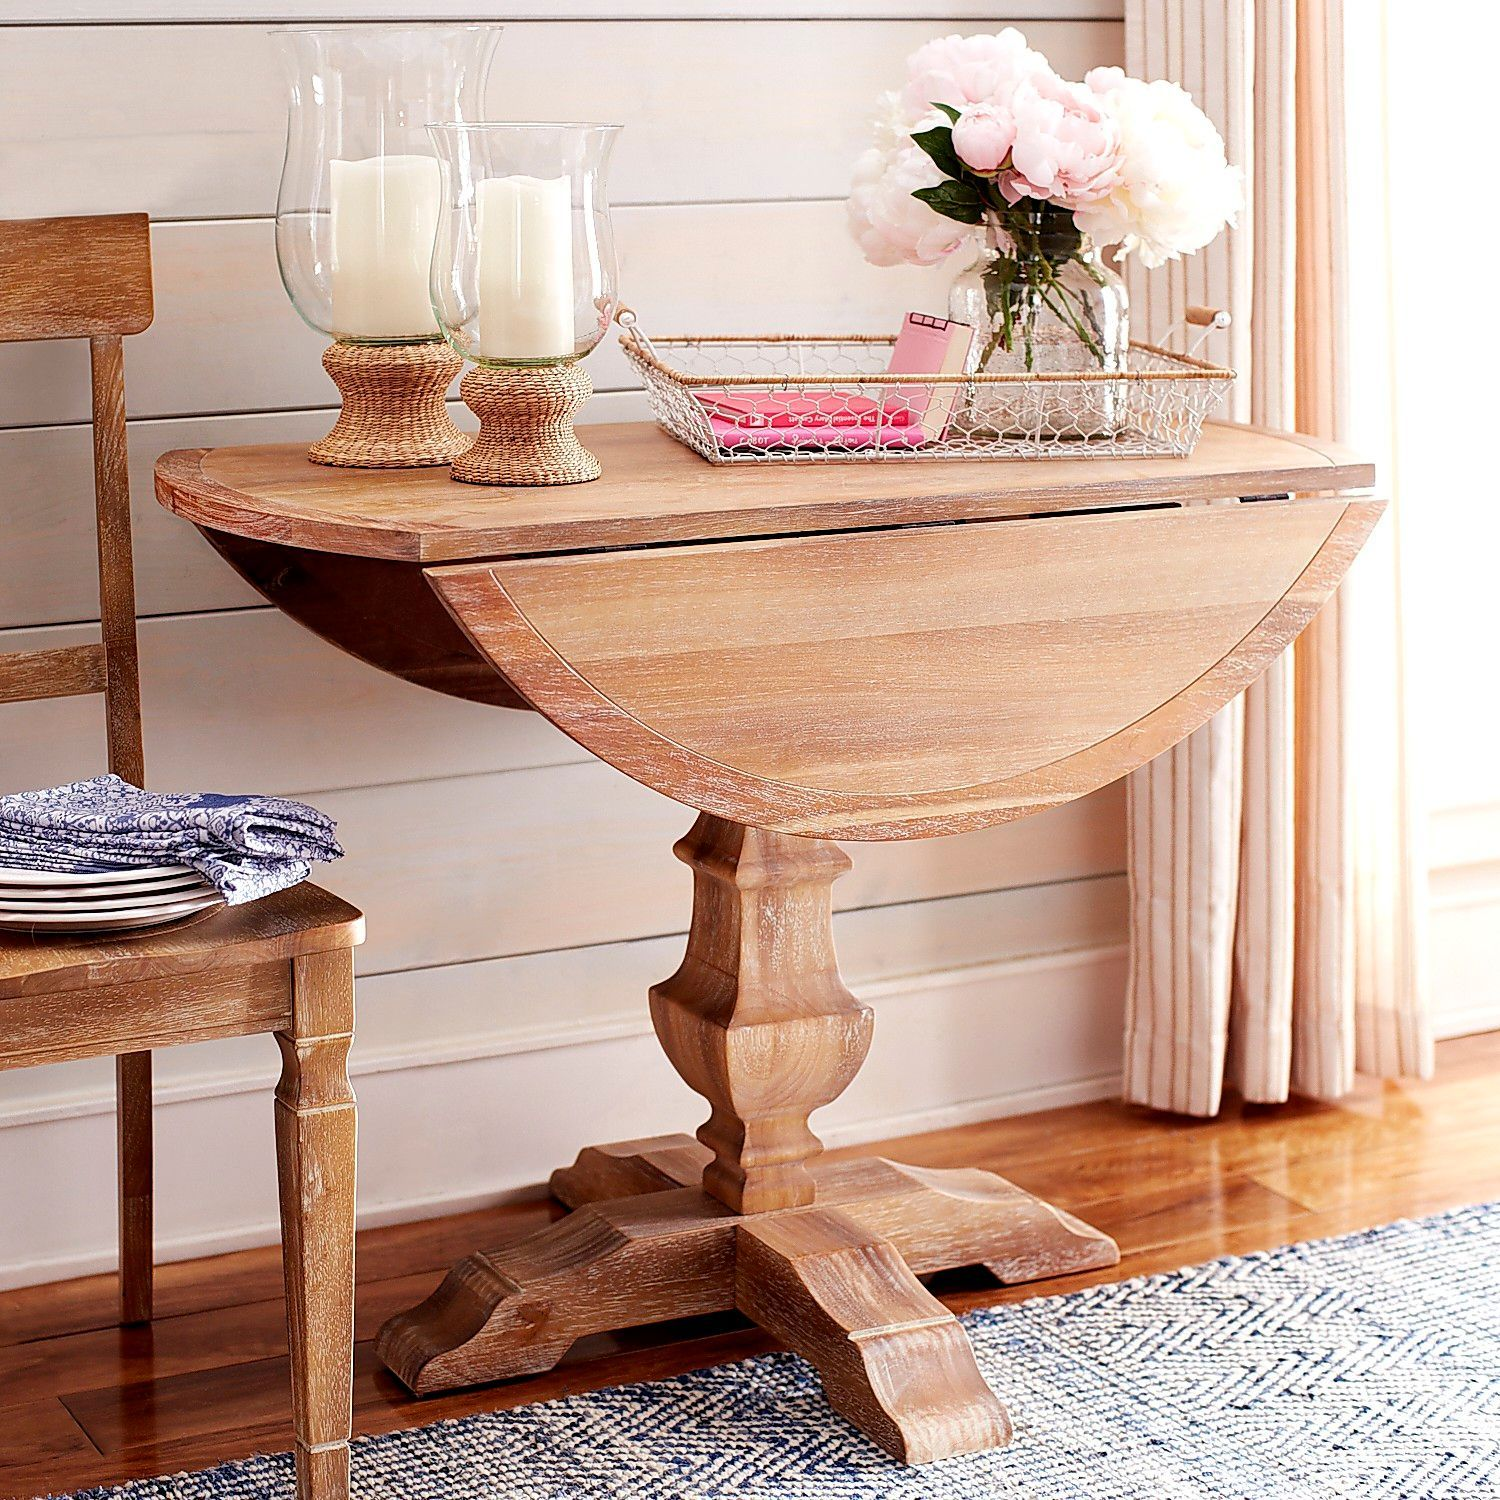 Bradding Round Drop Leaf Dining Table Round Dining Table Dining Furniture Makeover Drop Leaf Dining Table